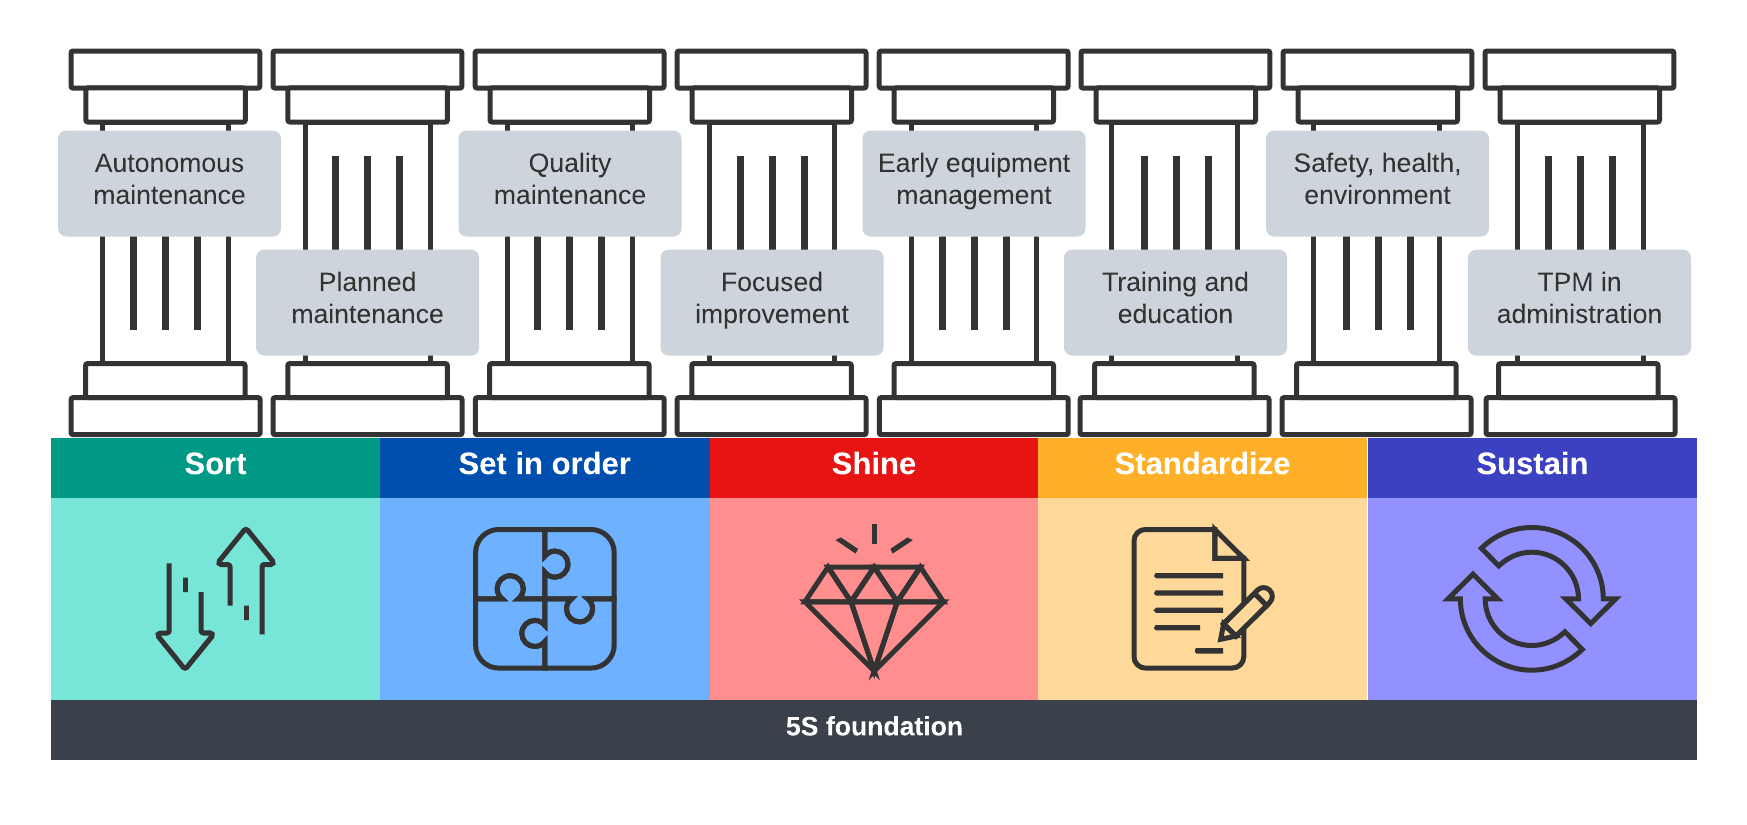 pillars of TPM and 5S foundation